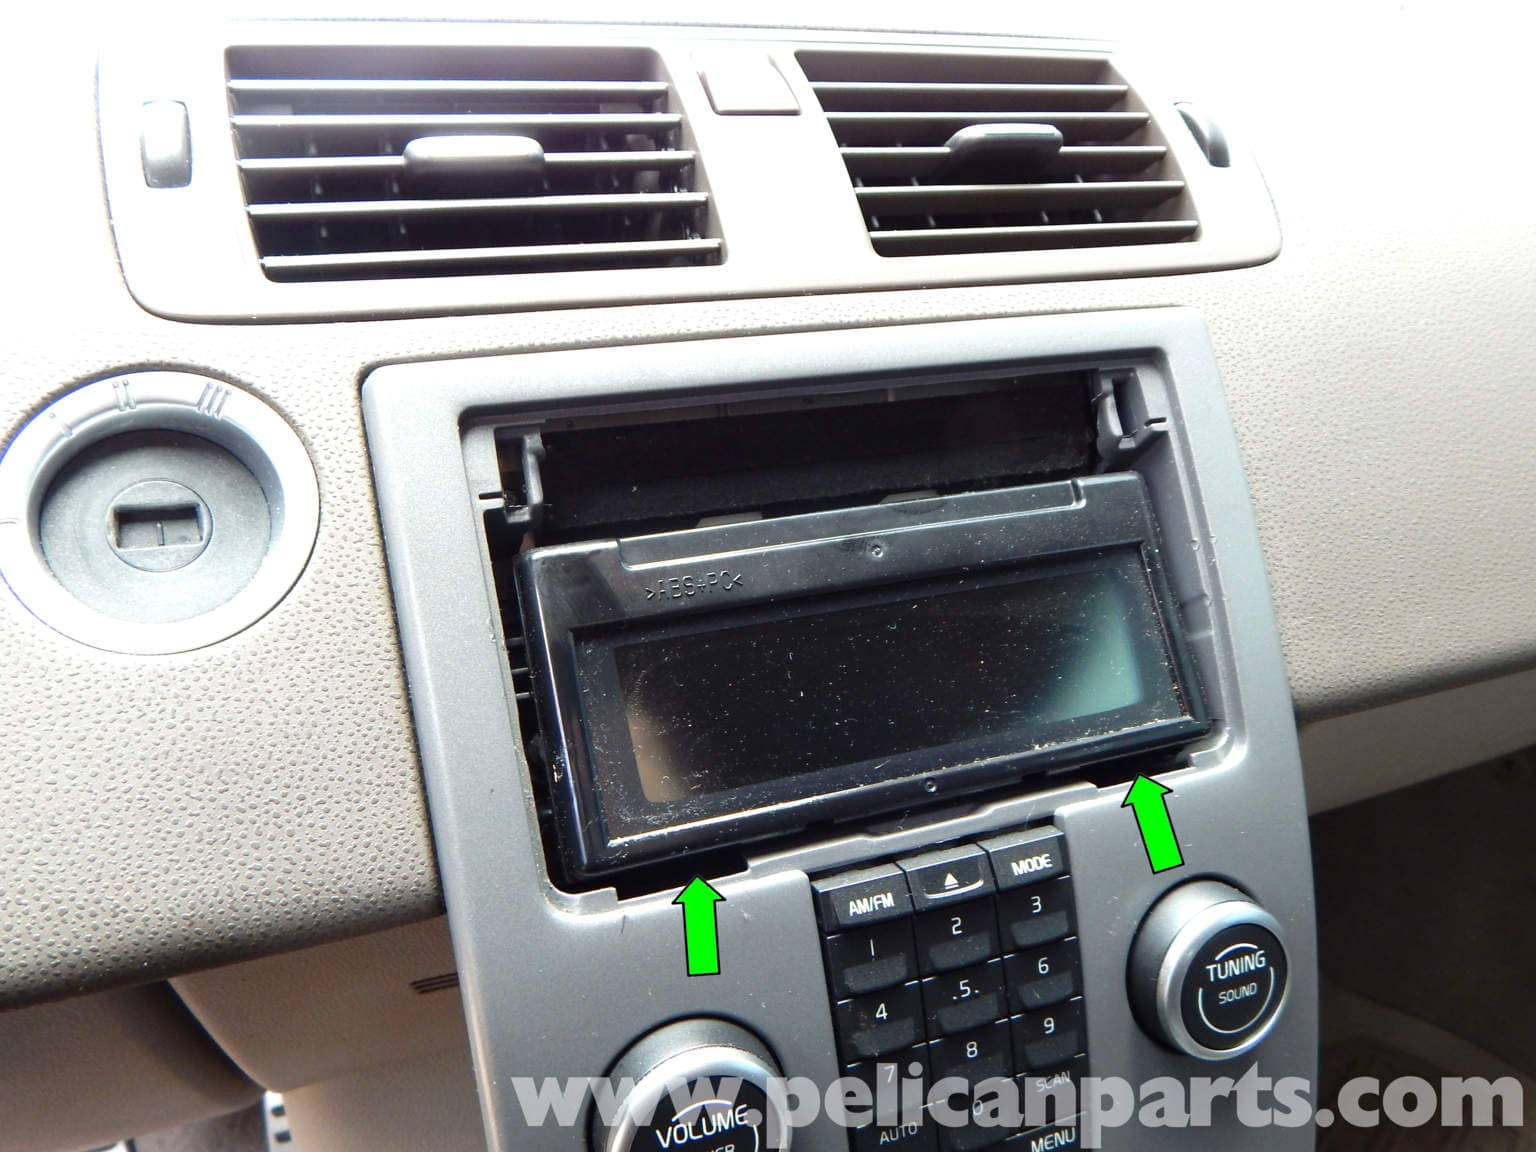 Volvo C30 Stereo Removal (2007-2013) - Pelican Parts DIY Maintenance Article